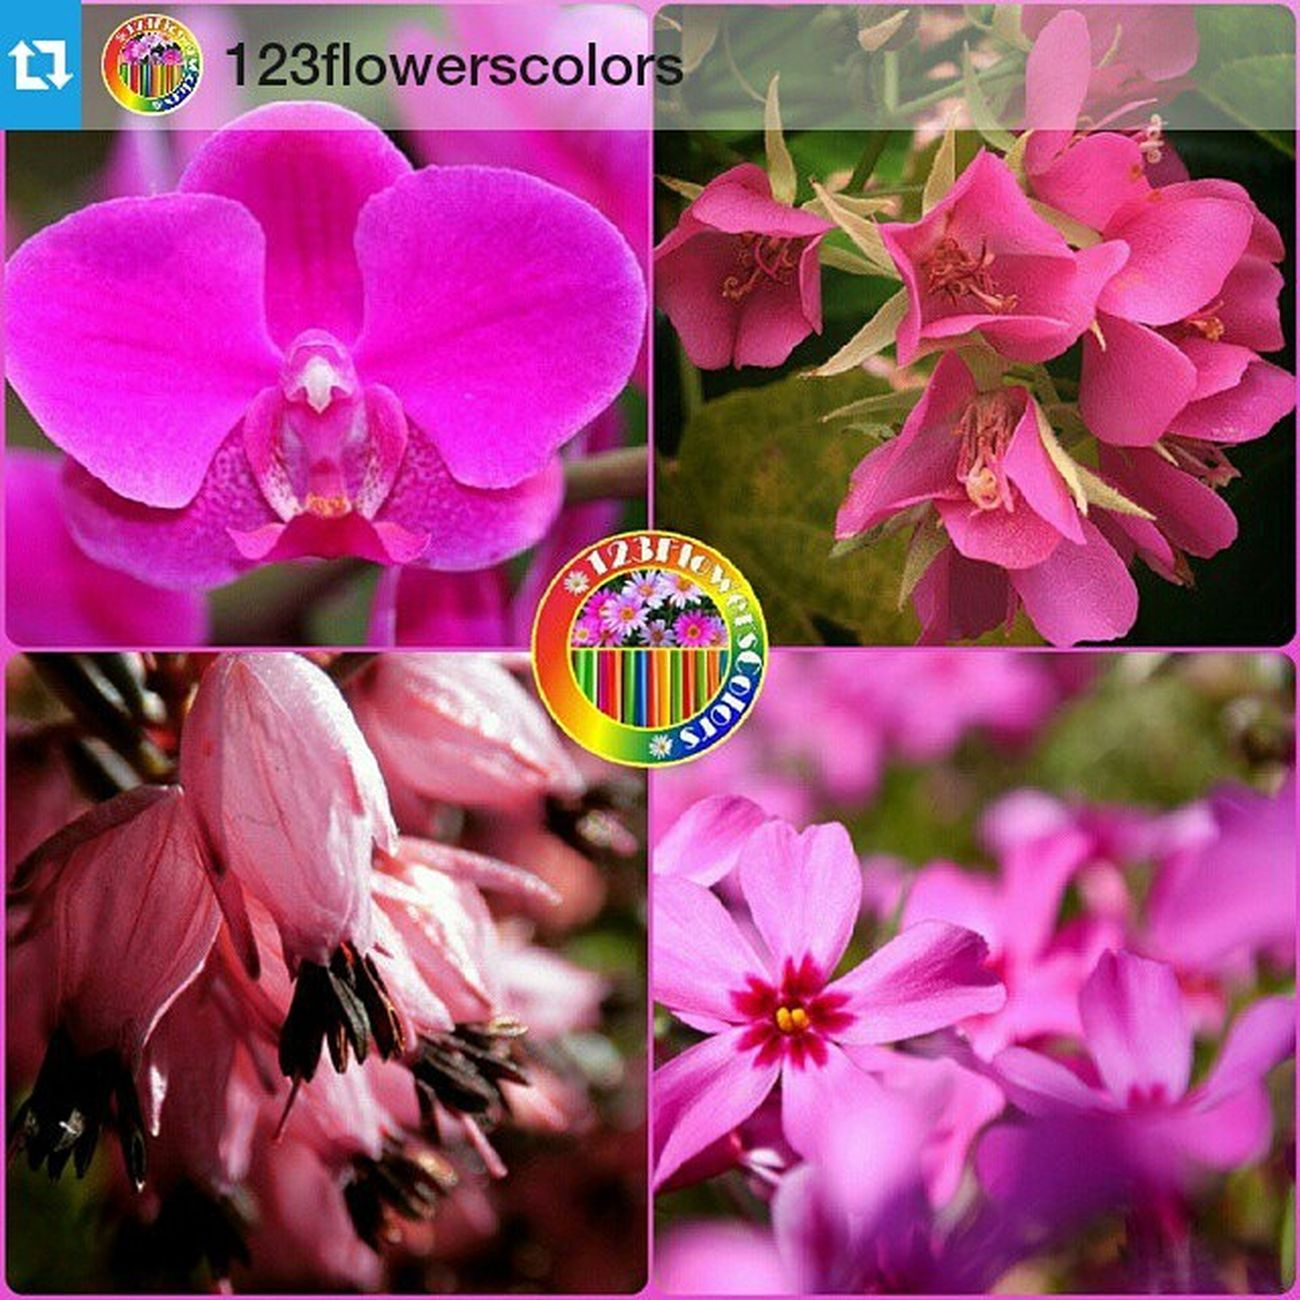 Thank you so much @123flowerscolors for featuring my picture! ・・・ . . 🎨 Set No. 🌹 1069 [09 - 04 - 2015] 🌈 . Hi! everyone. This set is the transit from PINK to RED! We are looking for shots around you in wonderful PINK and RED combined, can't resist to see your submission! Go, get tagging and join in the fun with us! ❤️🎀👠🌺🍓🌷🍒🌸❤️🎀🍓💞🌹 . Congratulation ! . 🎉💫 T/L @hipper66 ↖ 🎉💫 T/R @pinkie769 ↗️ 🎉💫 B/L @tibi888 ↙ 🎉💫 B/R @yokko2954 ↘️ . Tag your OWN photos to our TagS below : . 🎀123pinks for PINK ❤️123REDS for RED 🍊123ORANGES for ORANGE 🍋123yellows for YELLOW 🍀123GREENS for GREEN 🐳123BLUES for BLUE 💜123PURPLES for PURPLE 🌈123multi for MULTI-COLORS 🔳123BNW for BLACK&WHITE . Tag 123flowerscolors for the COMBINATION COLORS. . 🎨🌈 Selected by : @FiatForever 🌈🎨 .............................................................. .